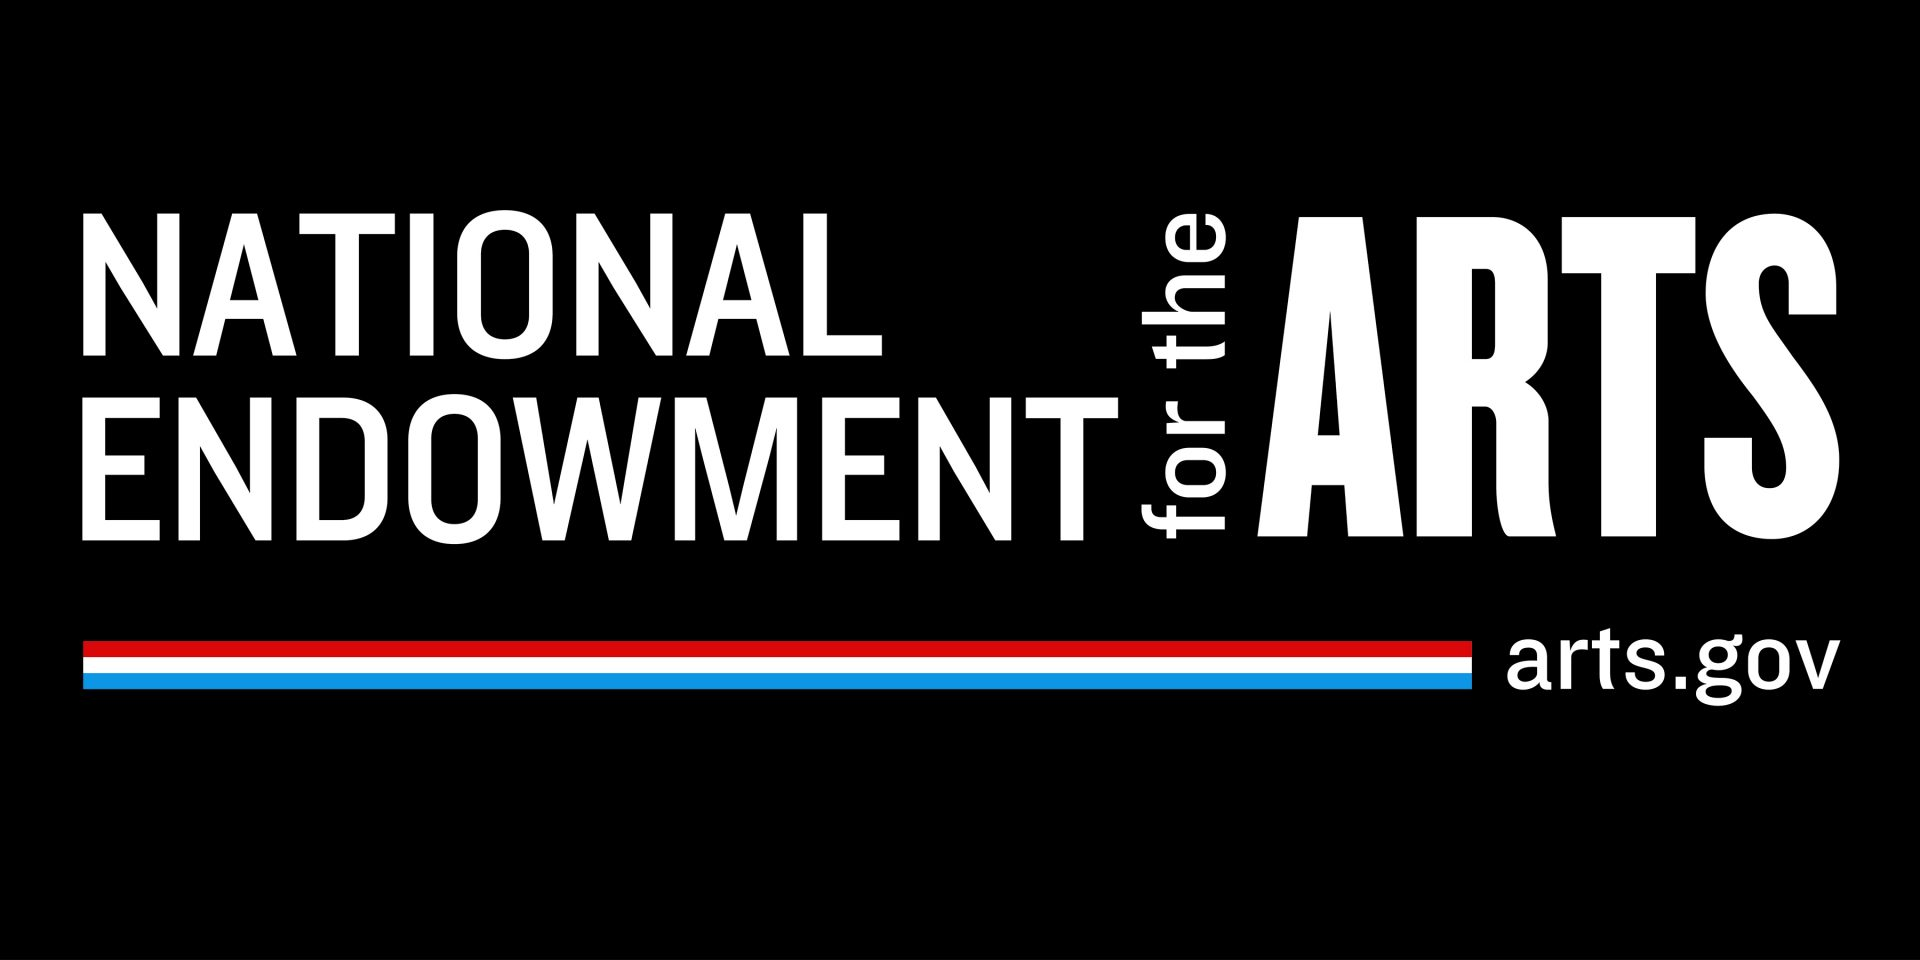 National Endowment for the Arts at arts.gov.